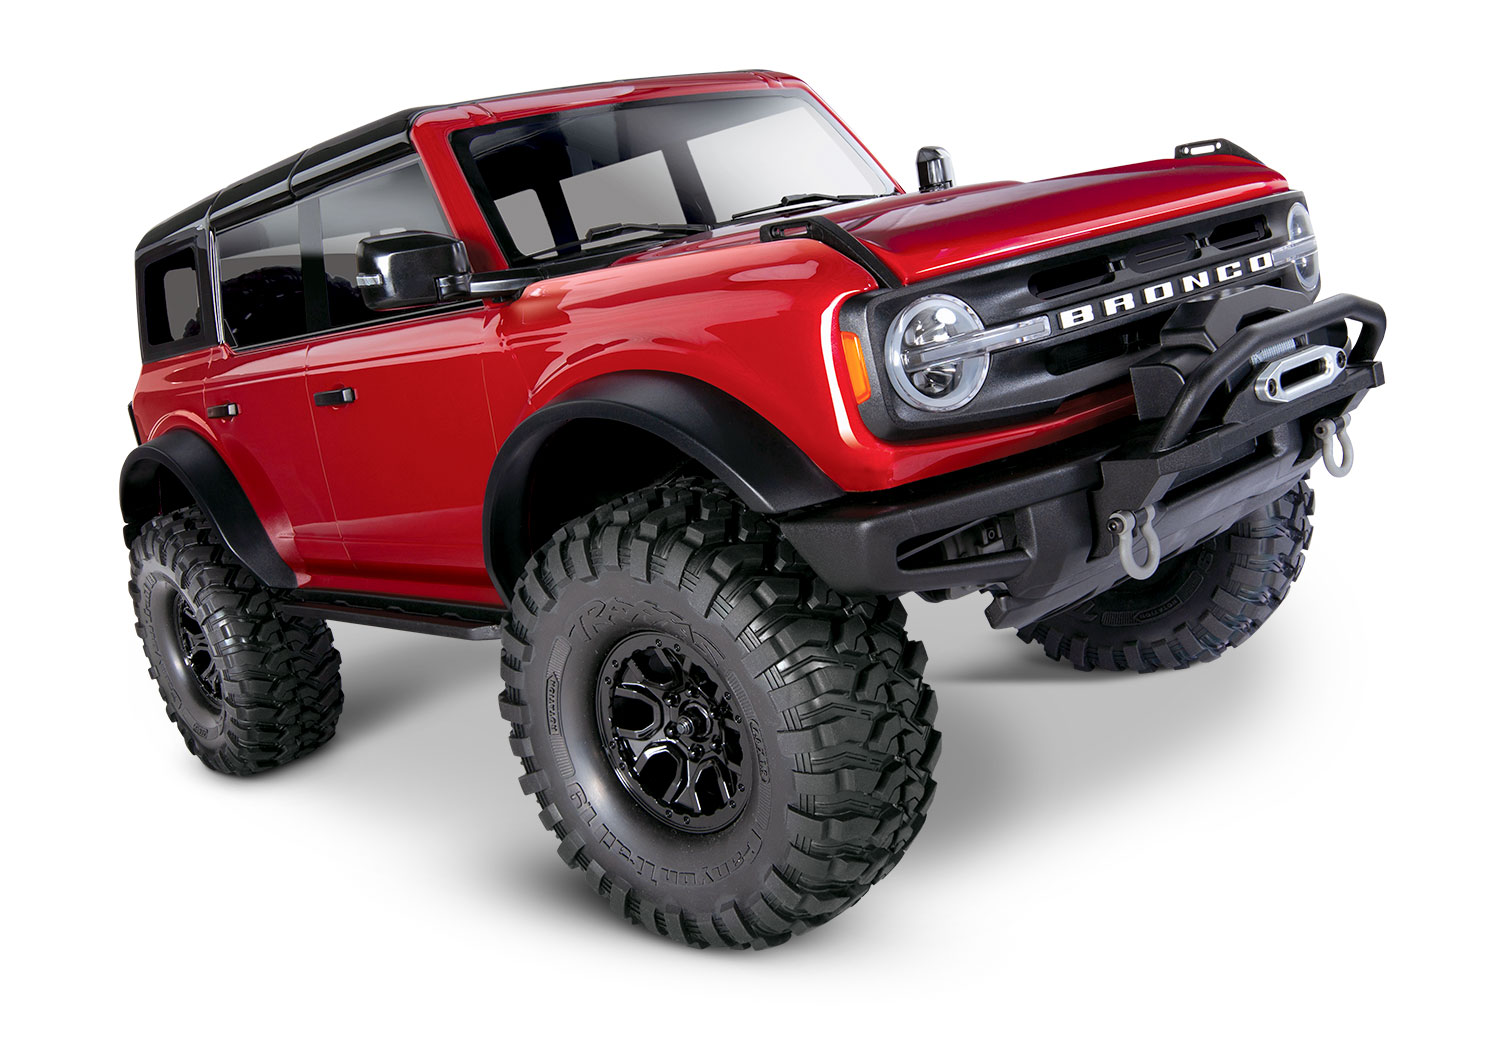 2021 Ford® Bronco TRX-4 Scale and Trail™ Crawler 92076-4 (Red)